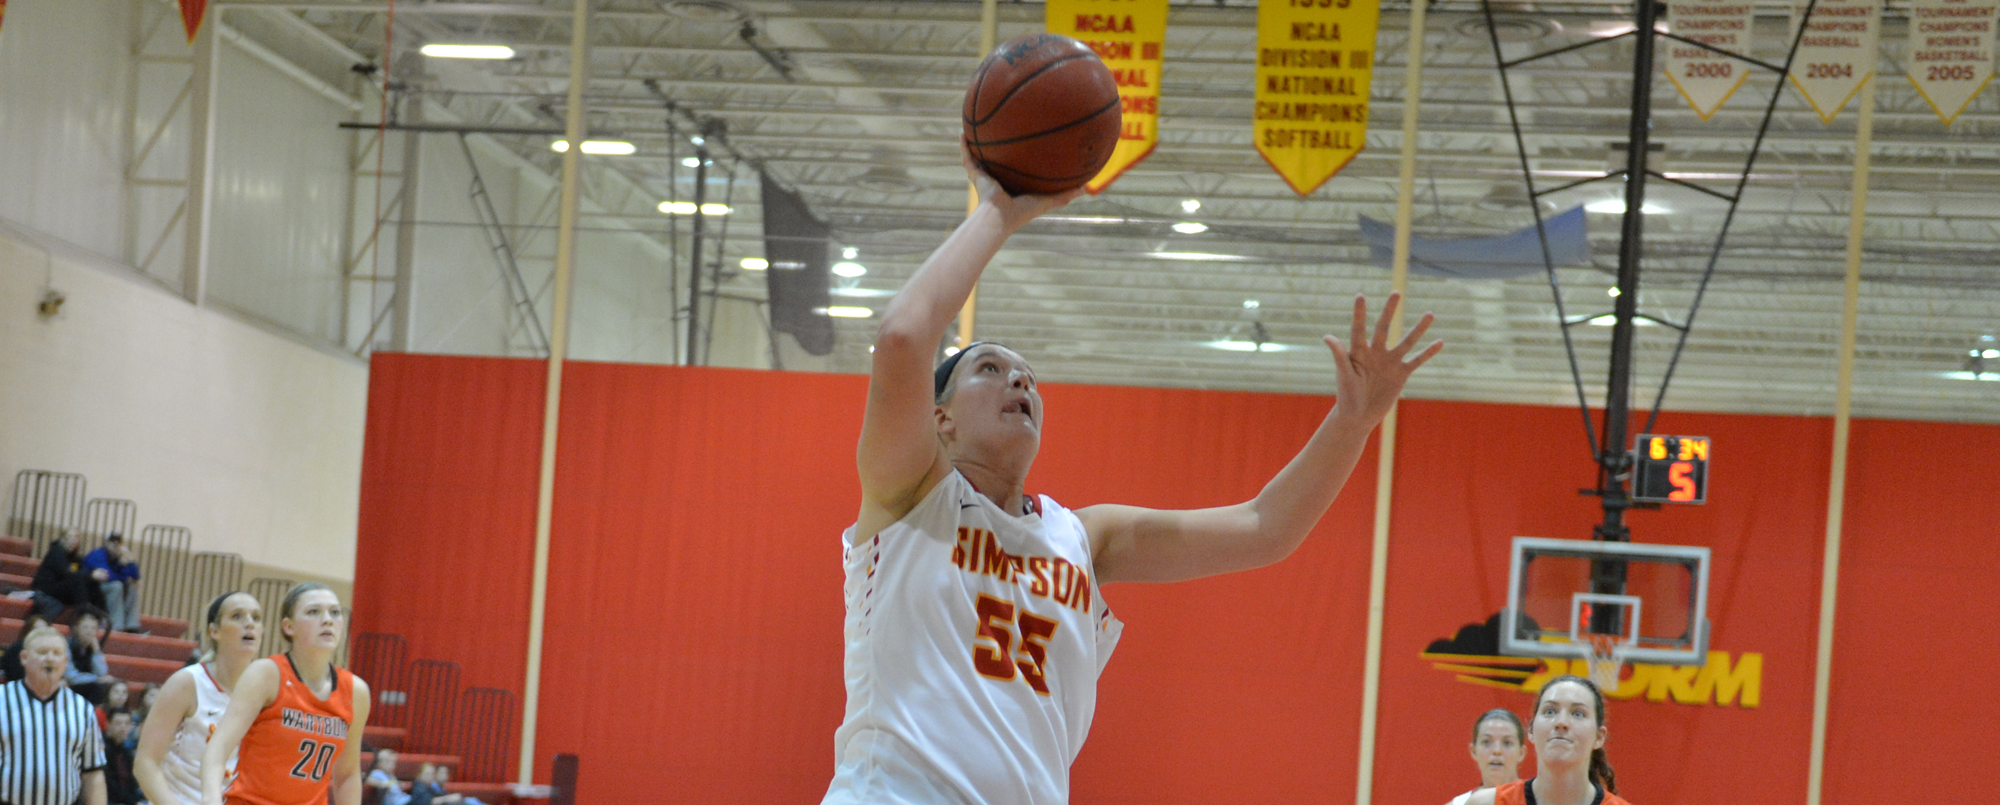 Noreen Morrow scored a game-high 23 points in Simpson's loss at Loras on Saturday.